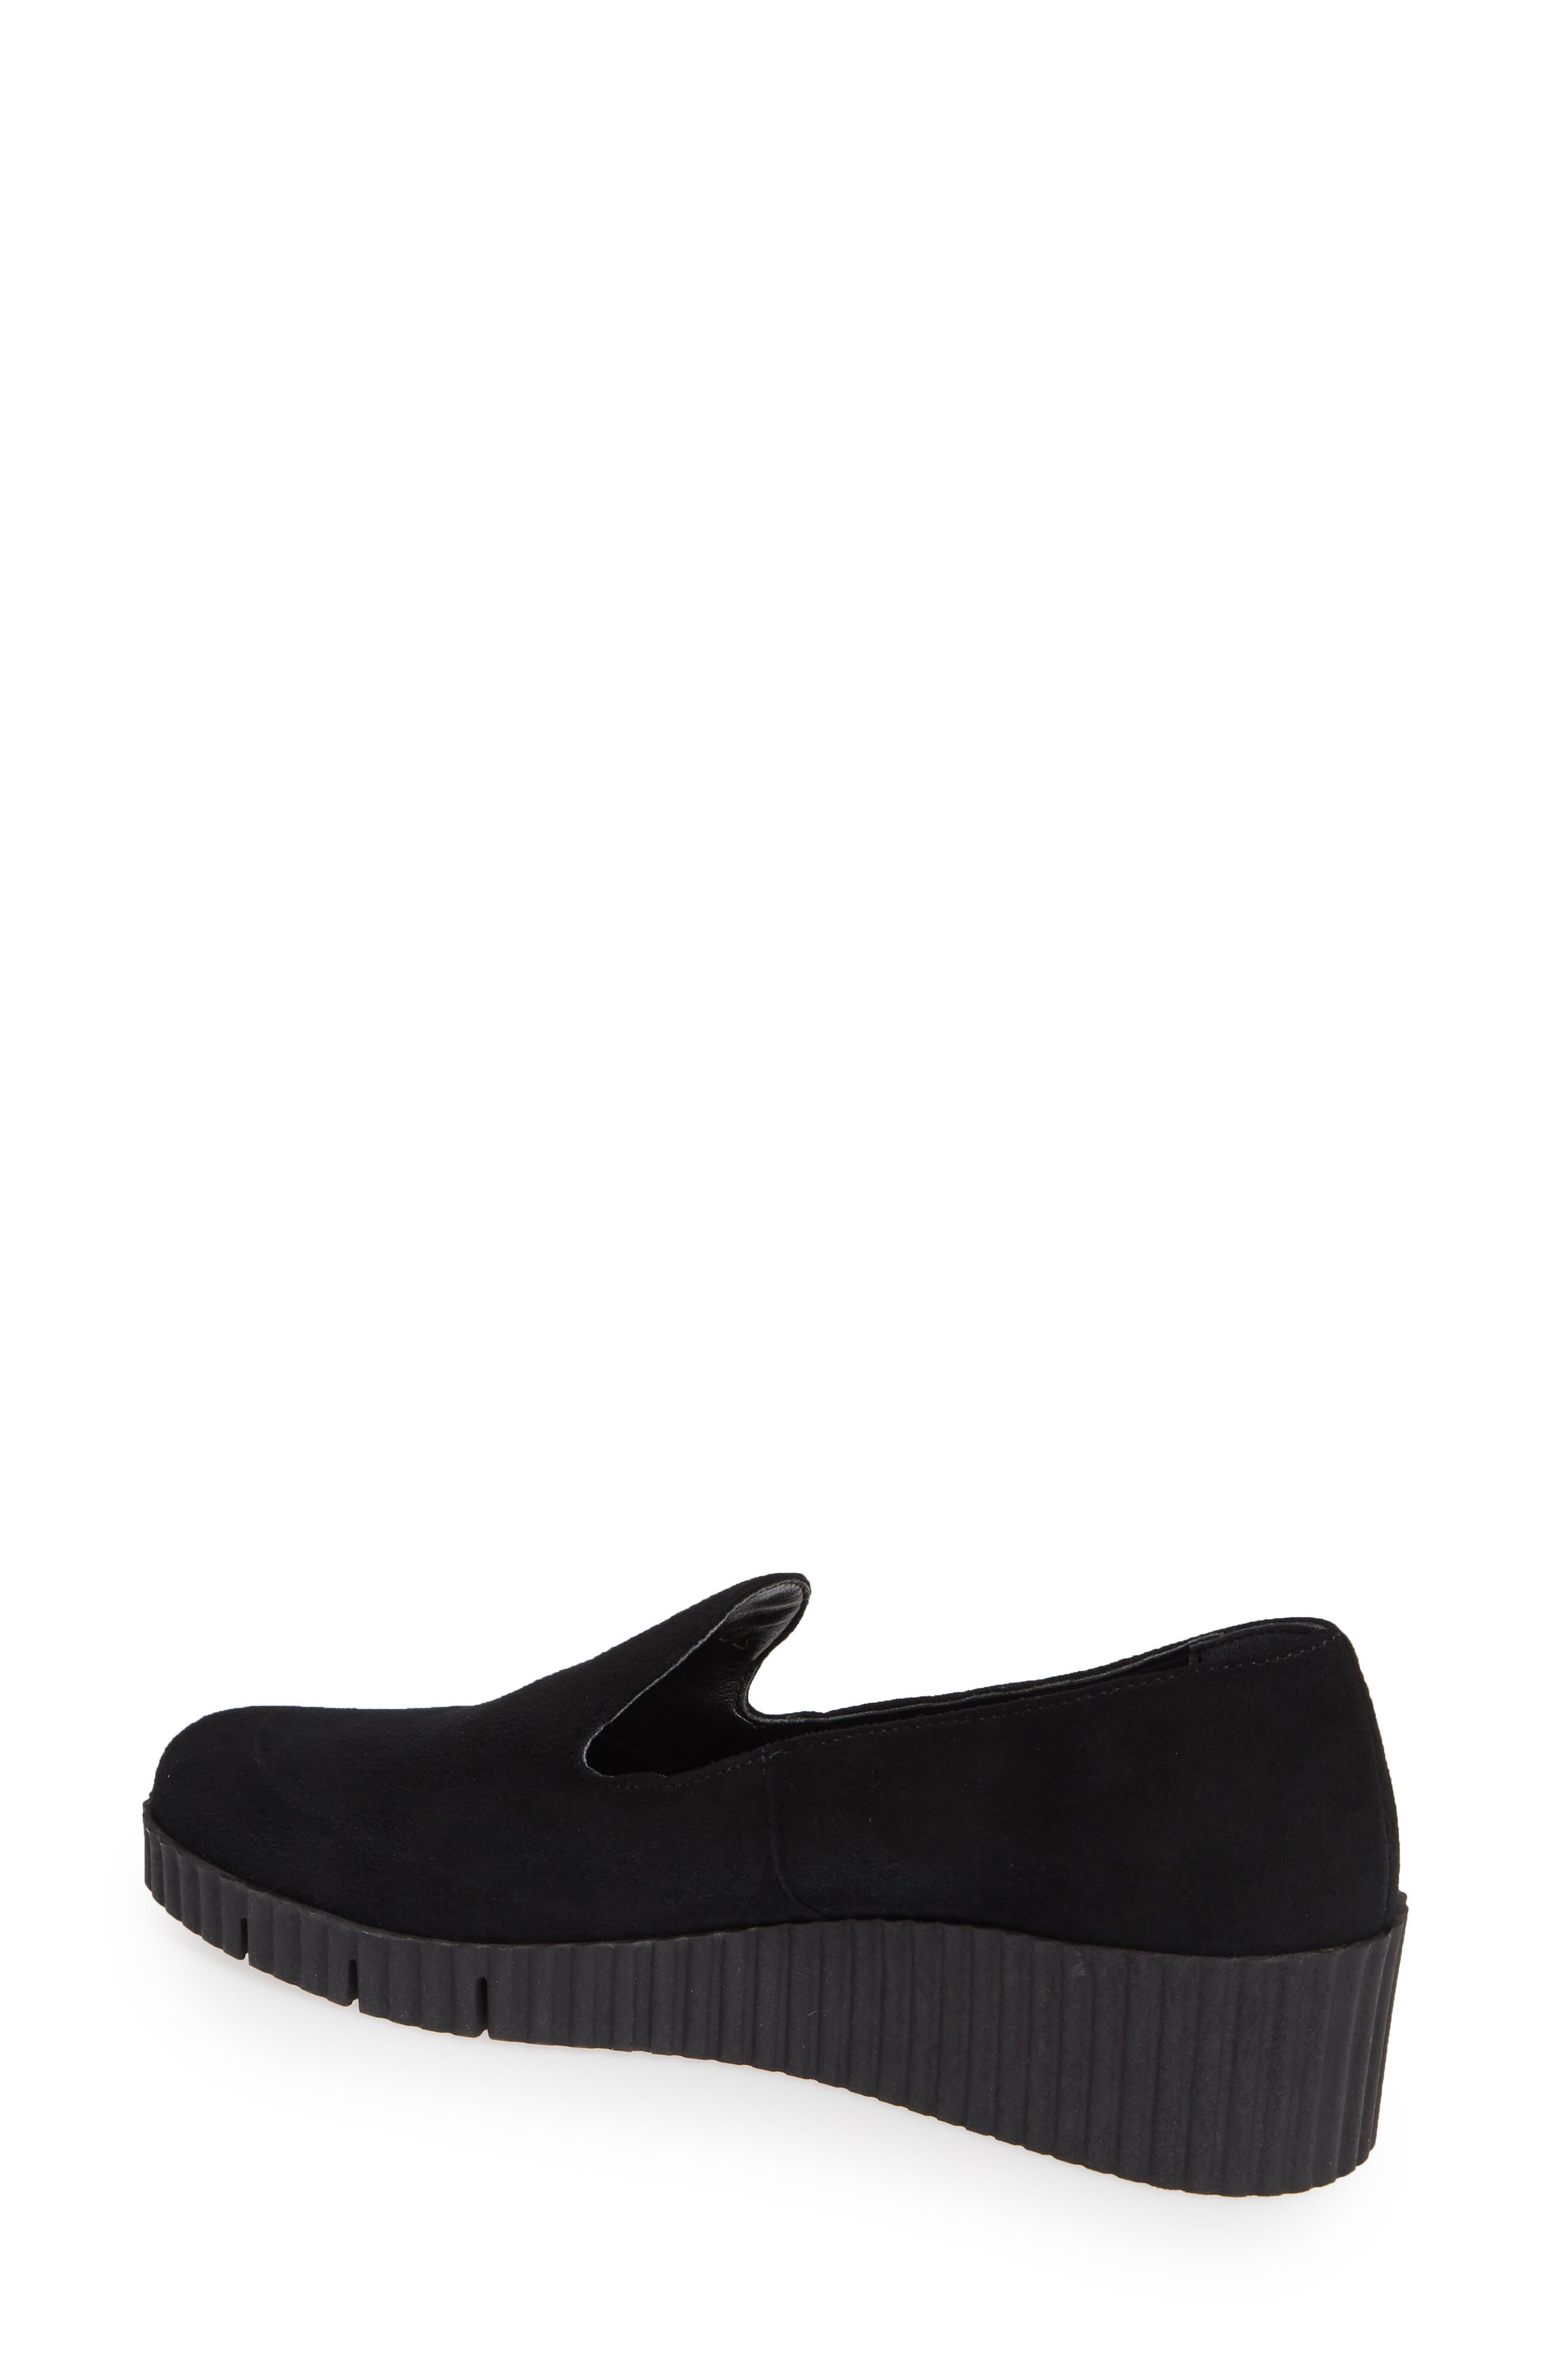 Fast Times Loafer,                             Alternate thumbnail 2, color,                             BLACK SUEDE